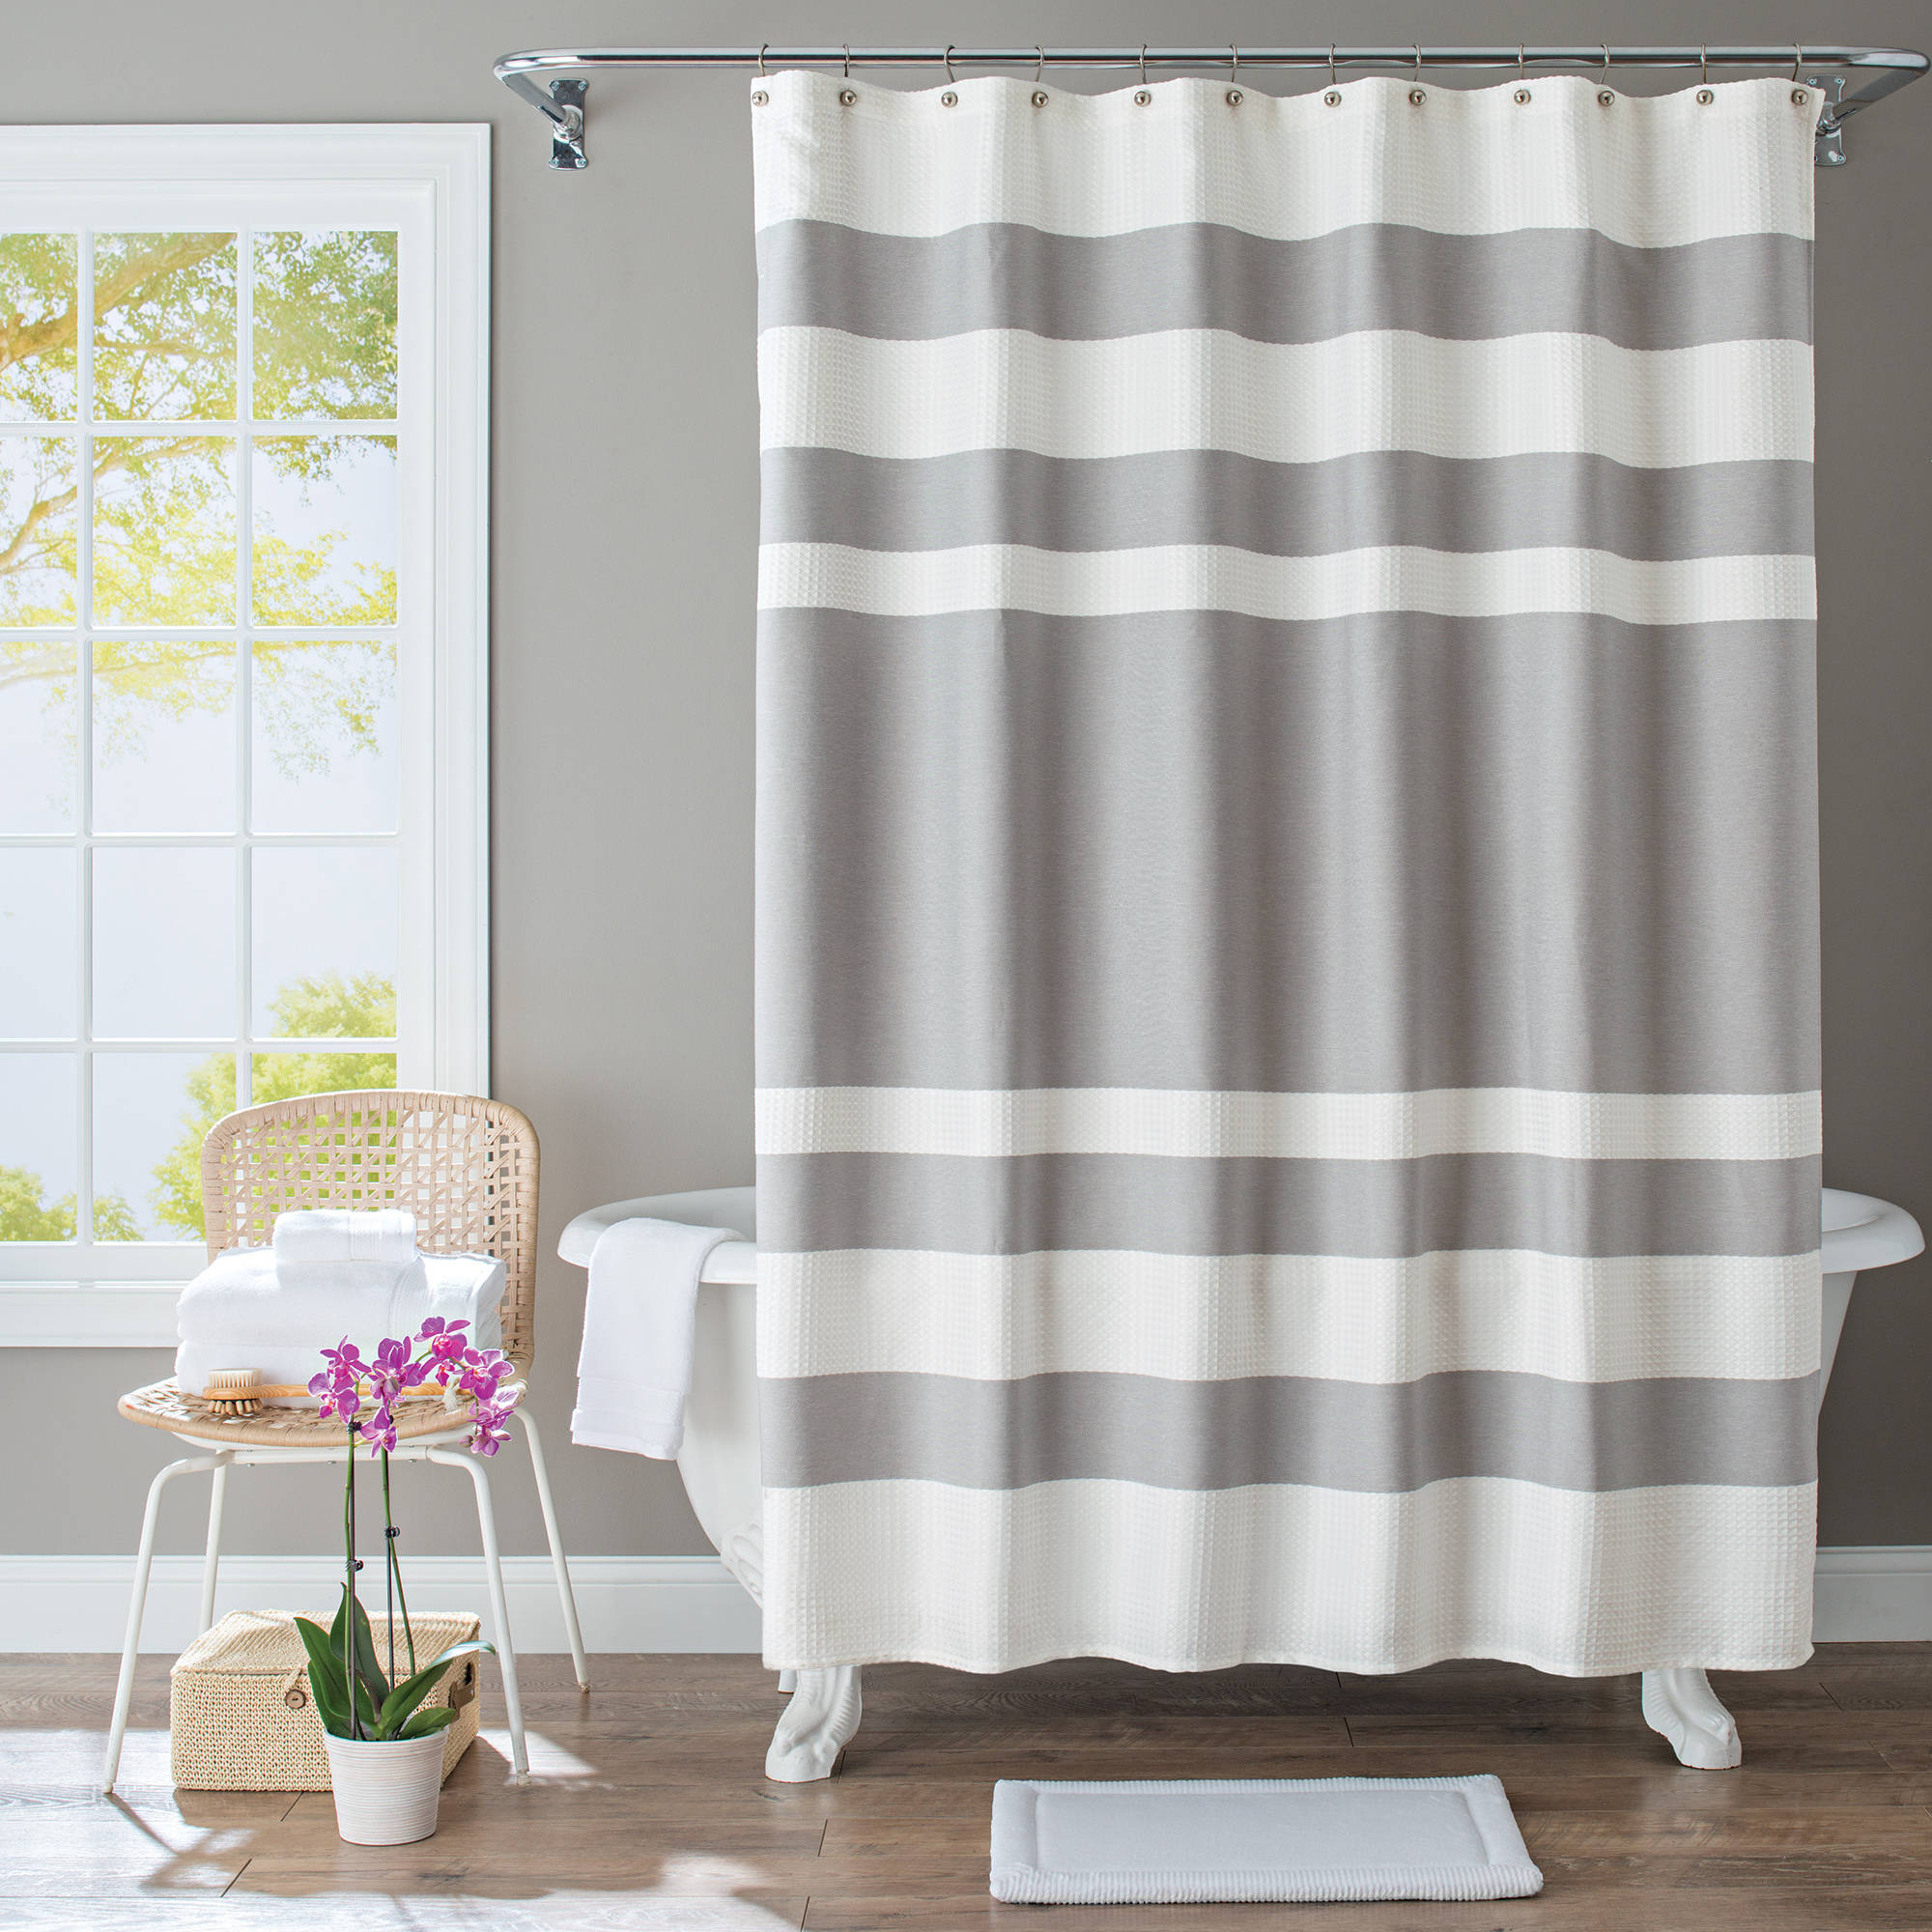 Better Homes And Gardens Waffle Stripe Fabric Shower Curtain   Walmart.com